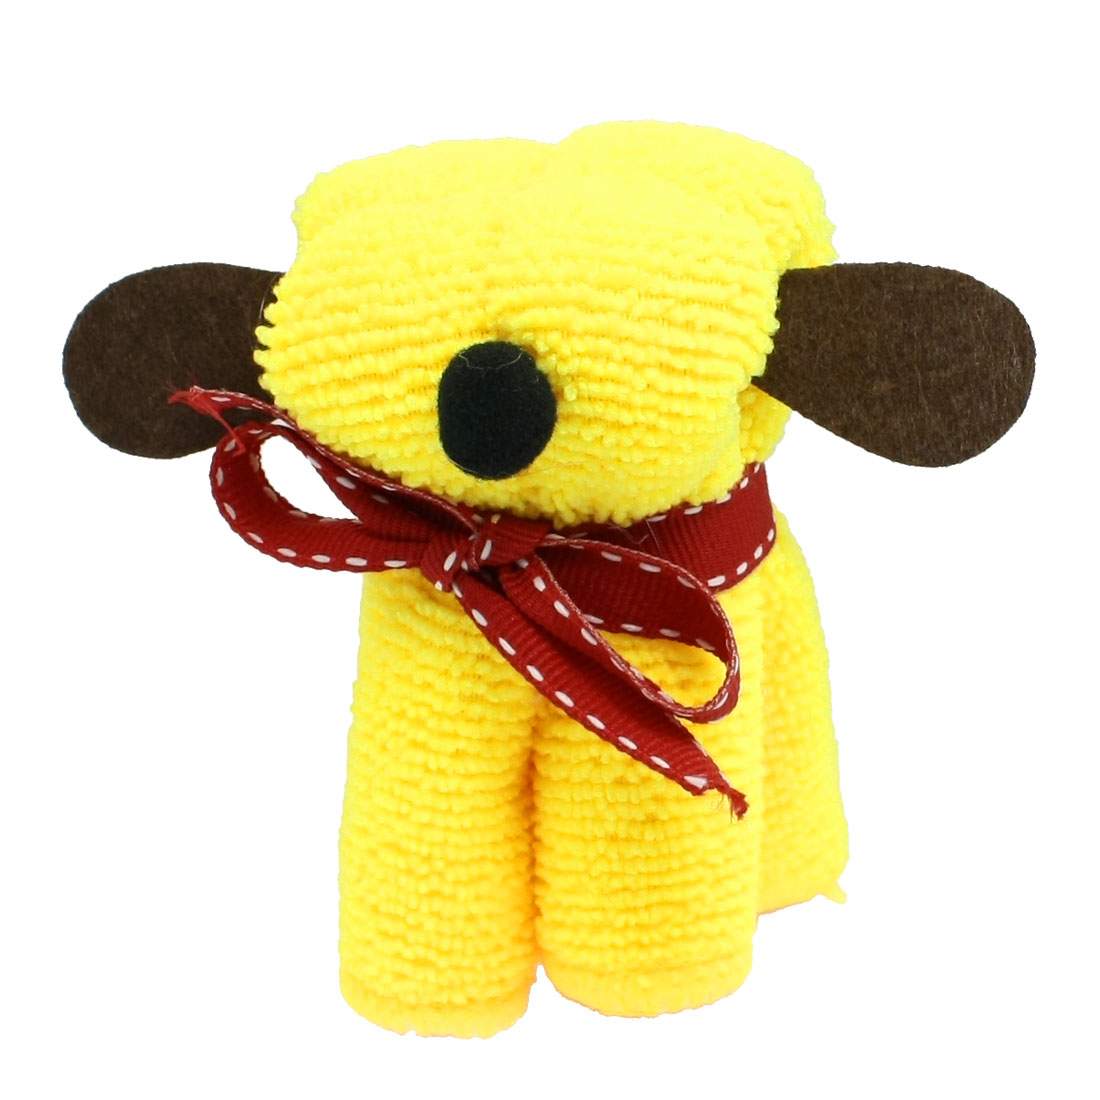 Wedding Party Red Ribbon Yellow Terry Puppy Dog Design Hand Towel 20cm x 20cm